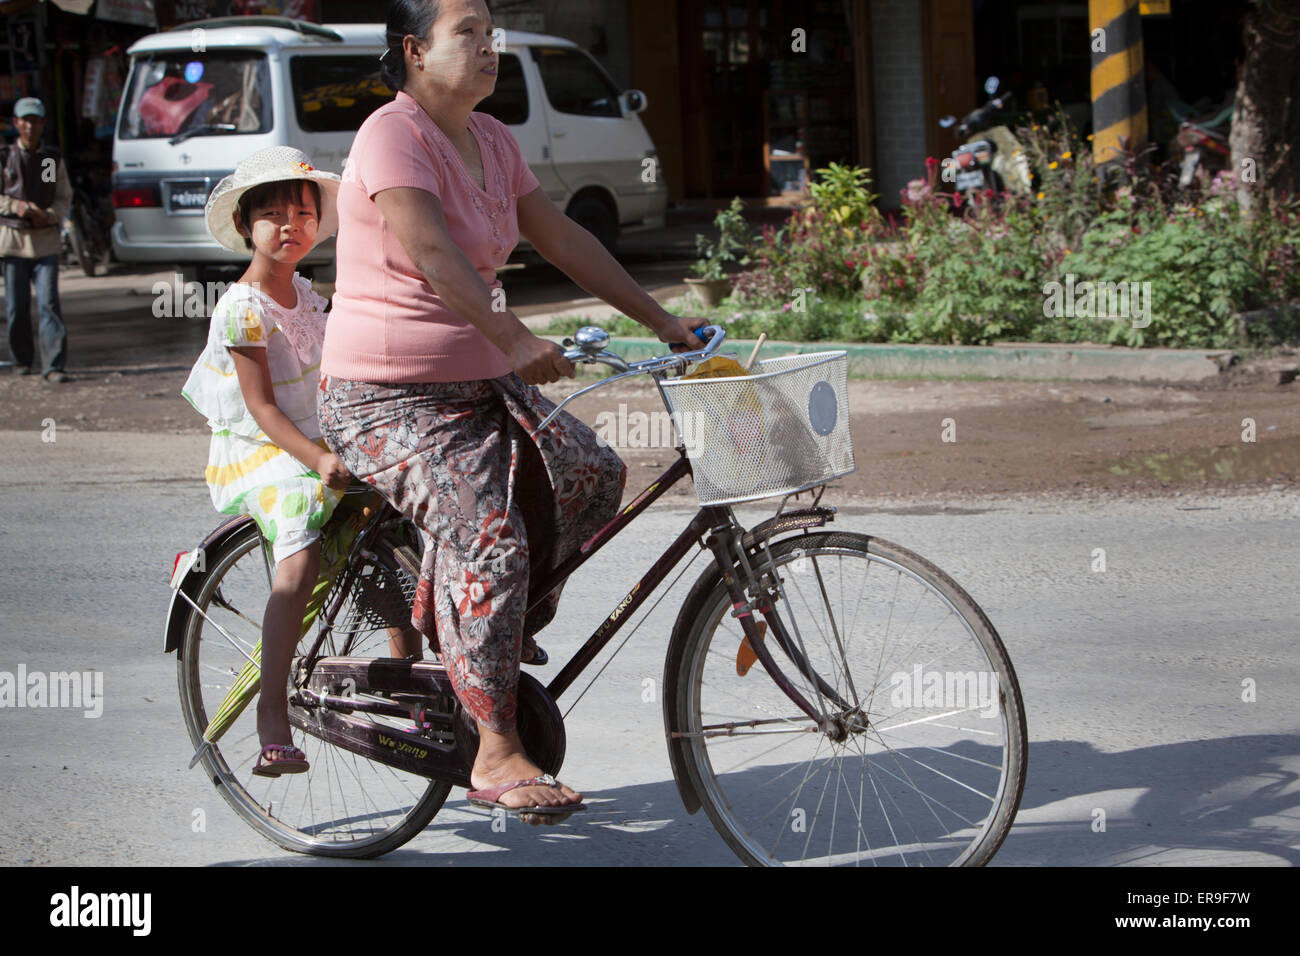 A woman (mother) rides her pedal cycle on a street in Hsipaw, Burma, a girl (her daughter) rides behind and looks - Stock Image